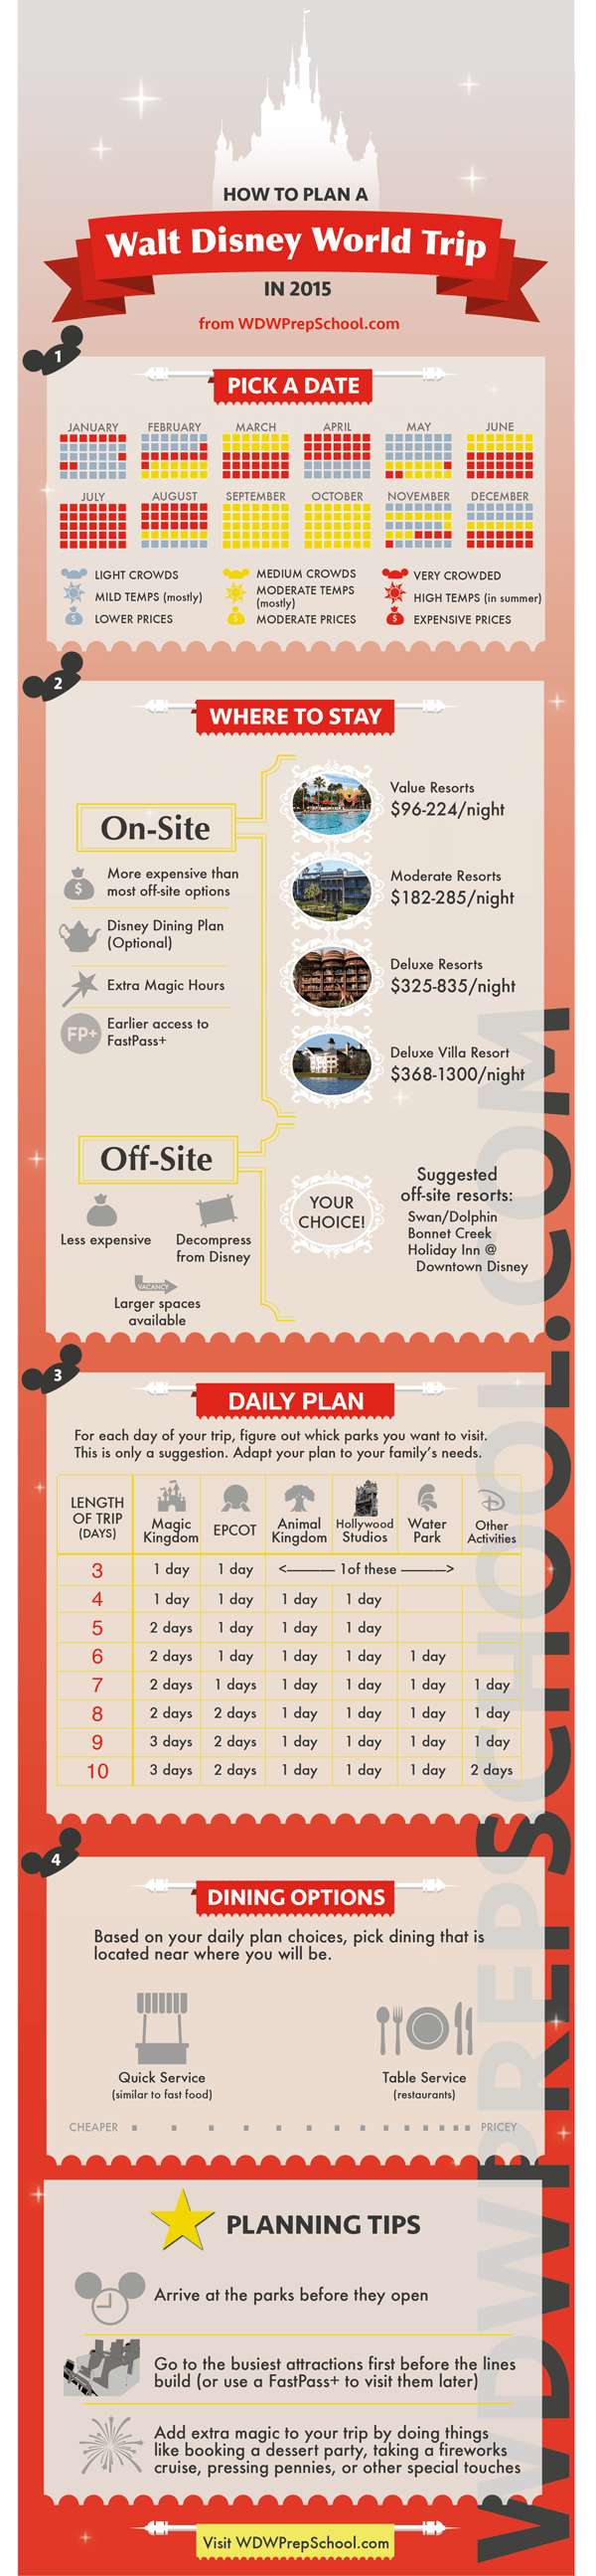 Disney Vacation Planning tips